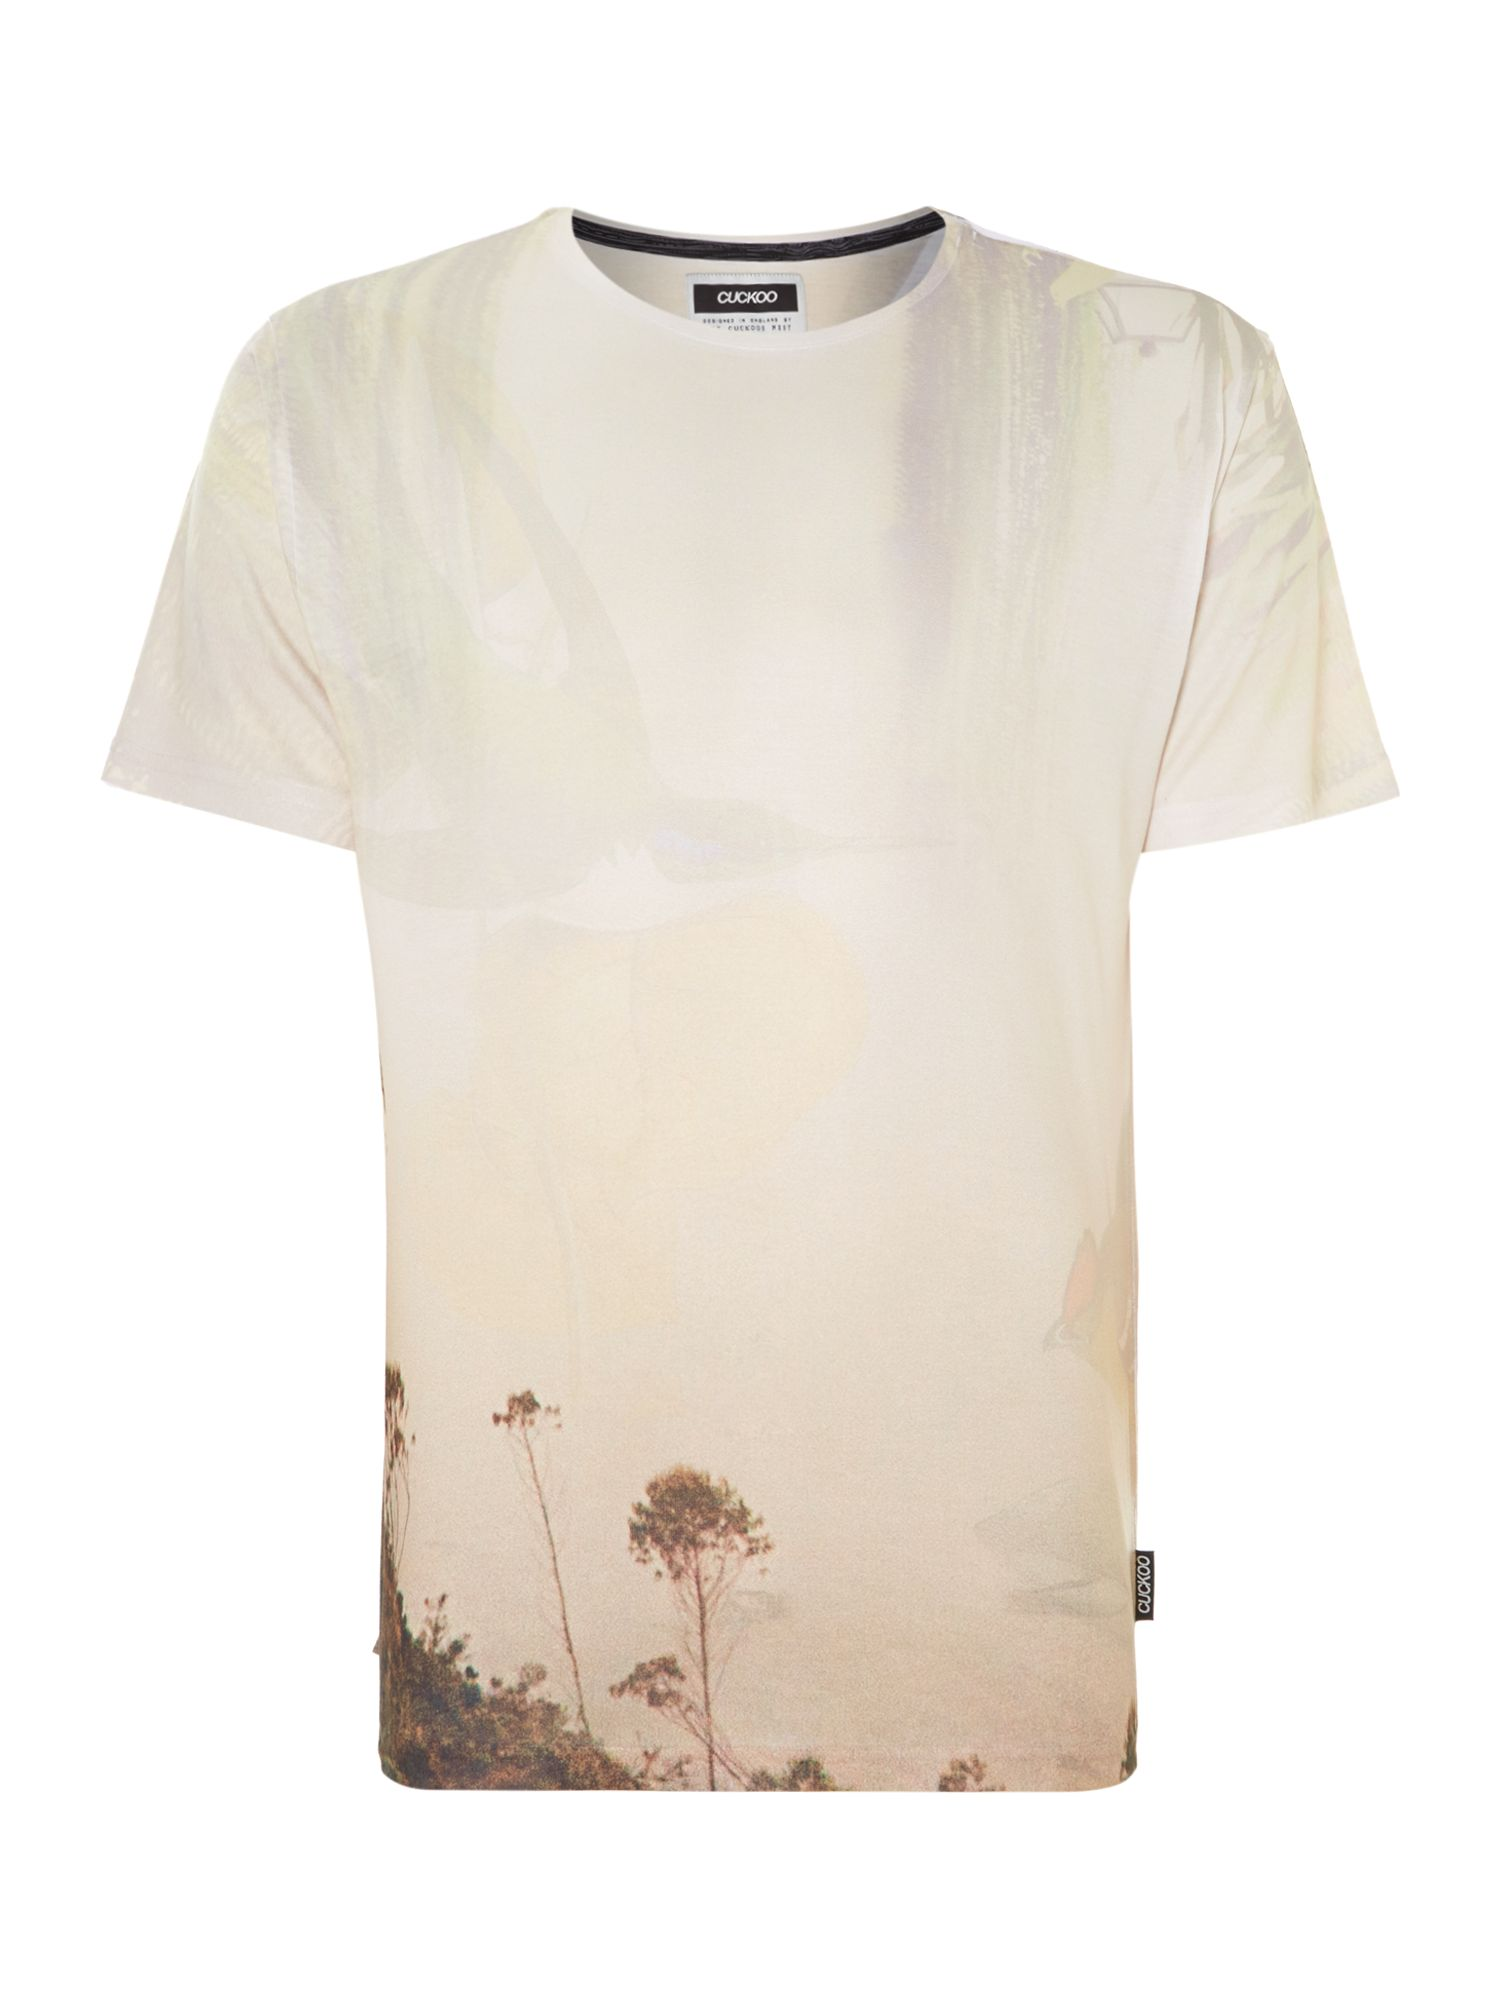 Mounteca printed t-shirt